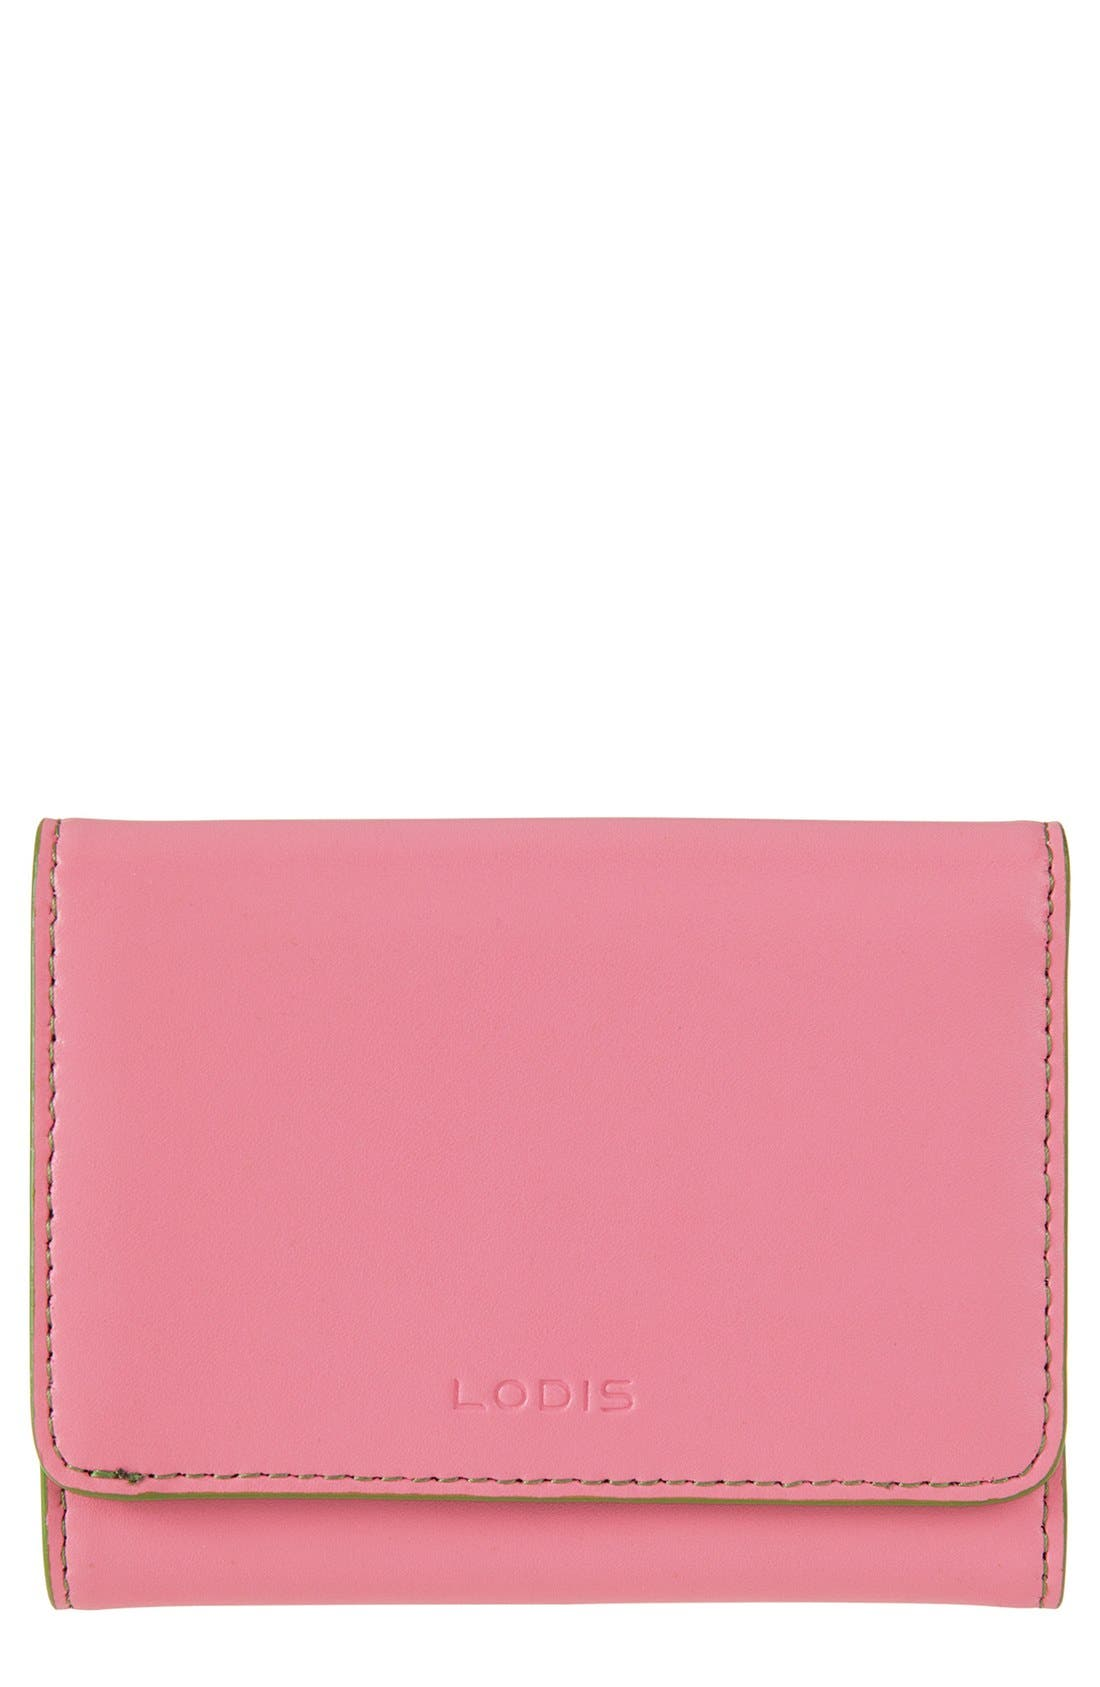 Main Image - Lodis 'Audrey - Mallory' Leather French Wallet